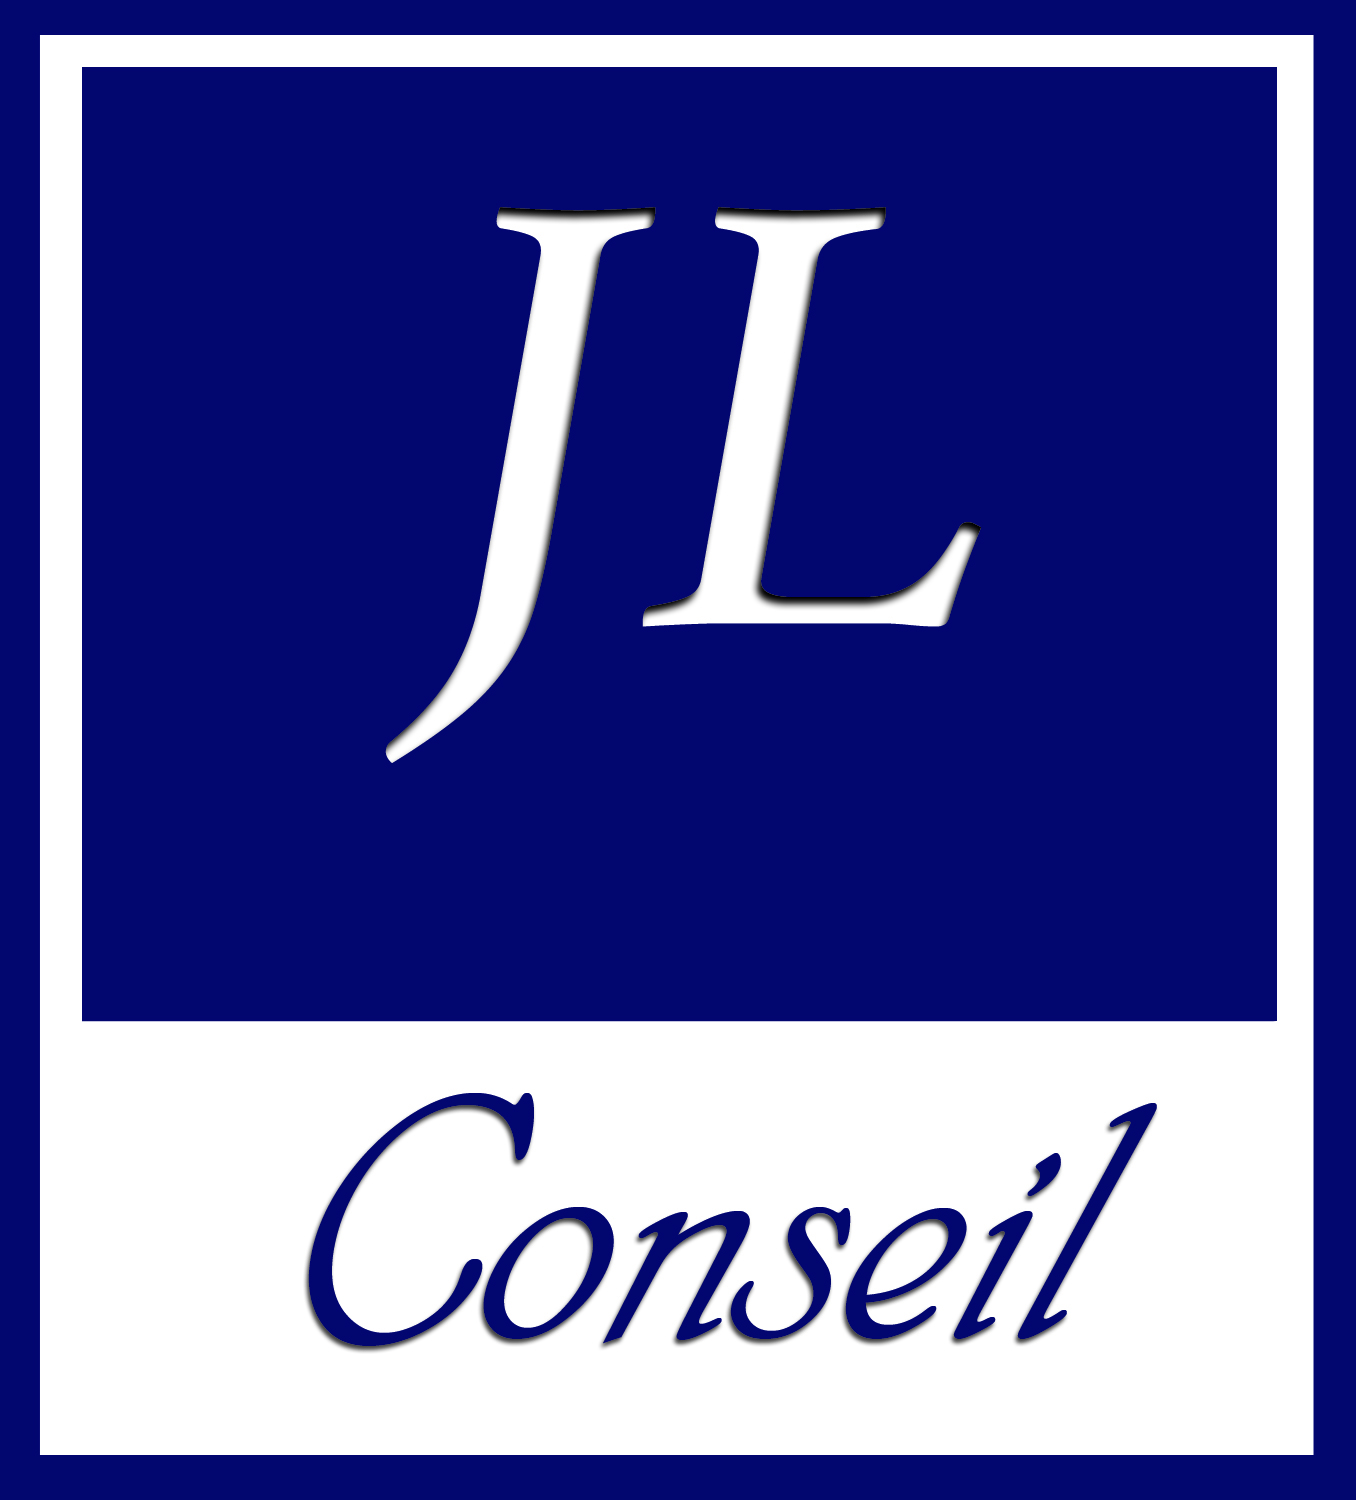 JL Conseil, Fusion, acquisition, Expertise, Accompagnement, Conseil